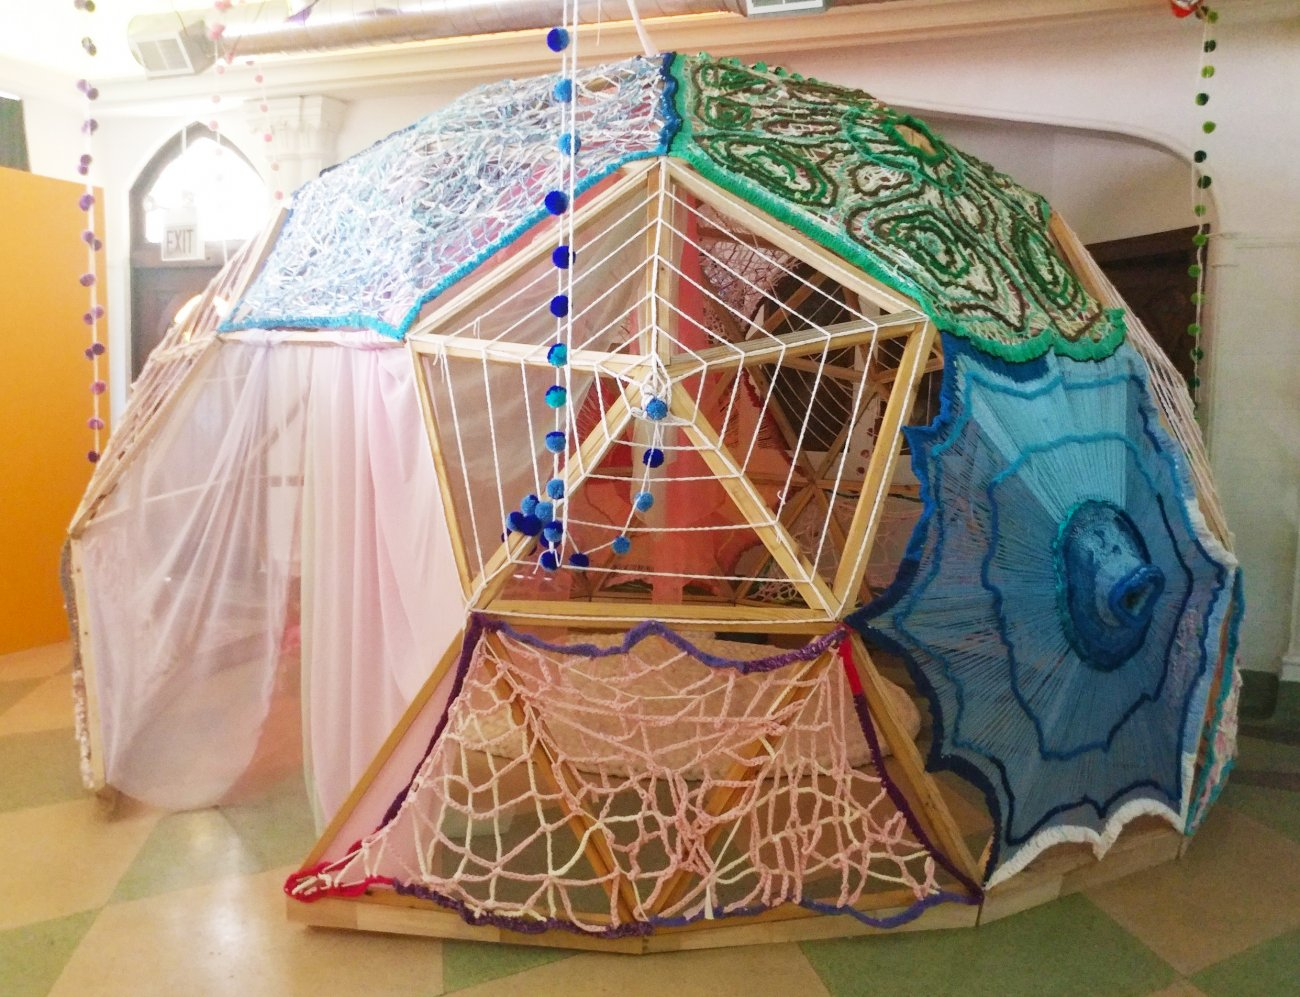 Photograph of geodesic dome covered in a variety of fabrics and crocheted materials.